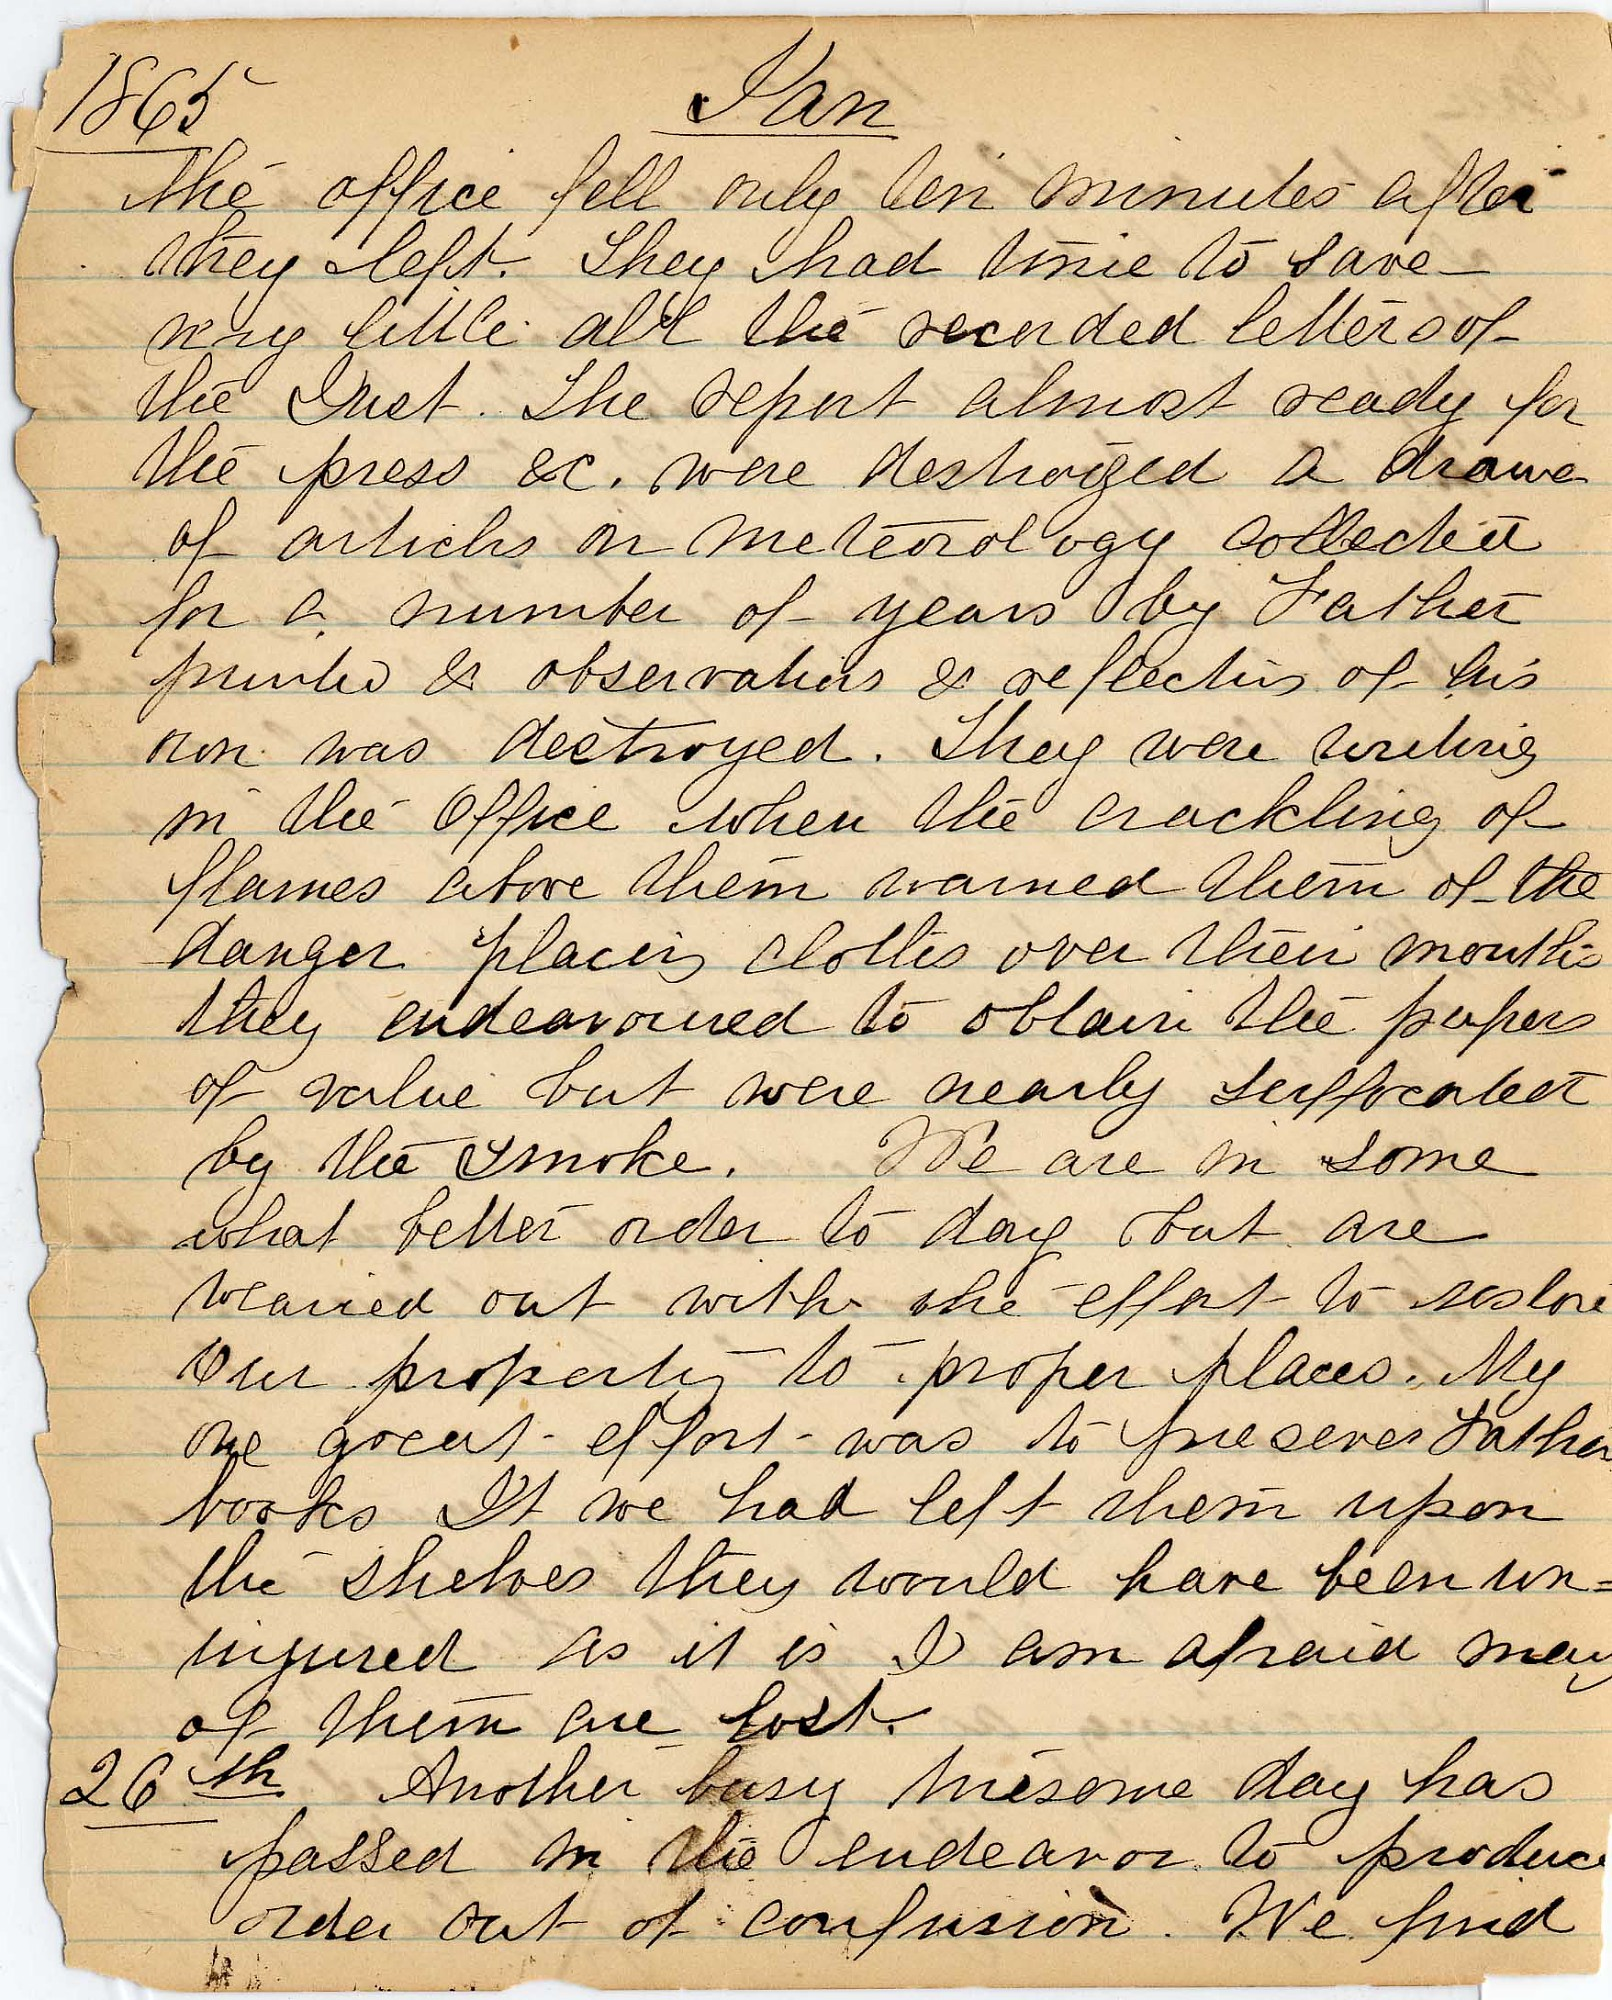 Mary Henry Diary, Fire - Jan 1865 - Page 4